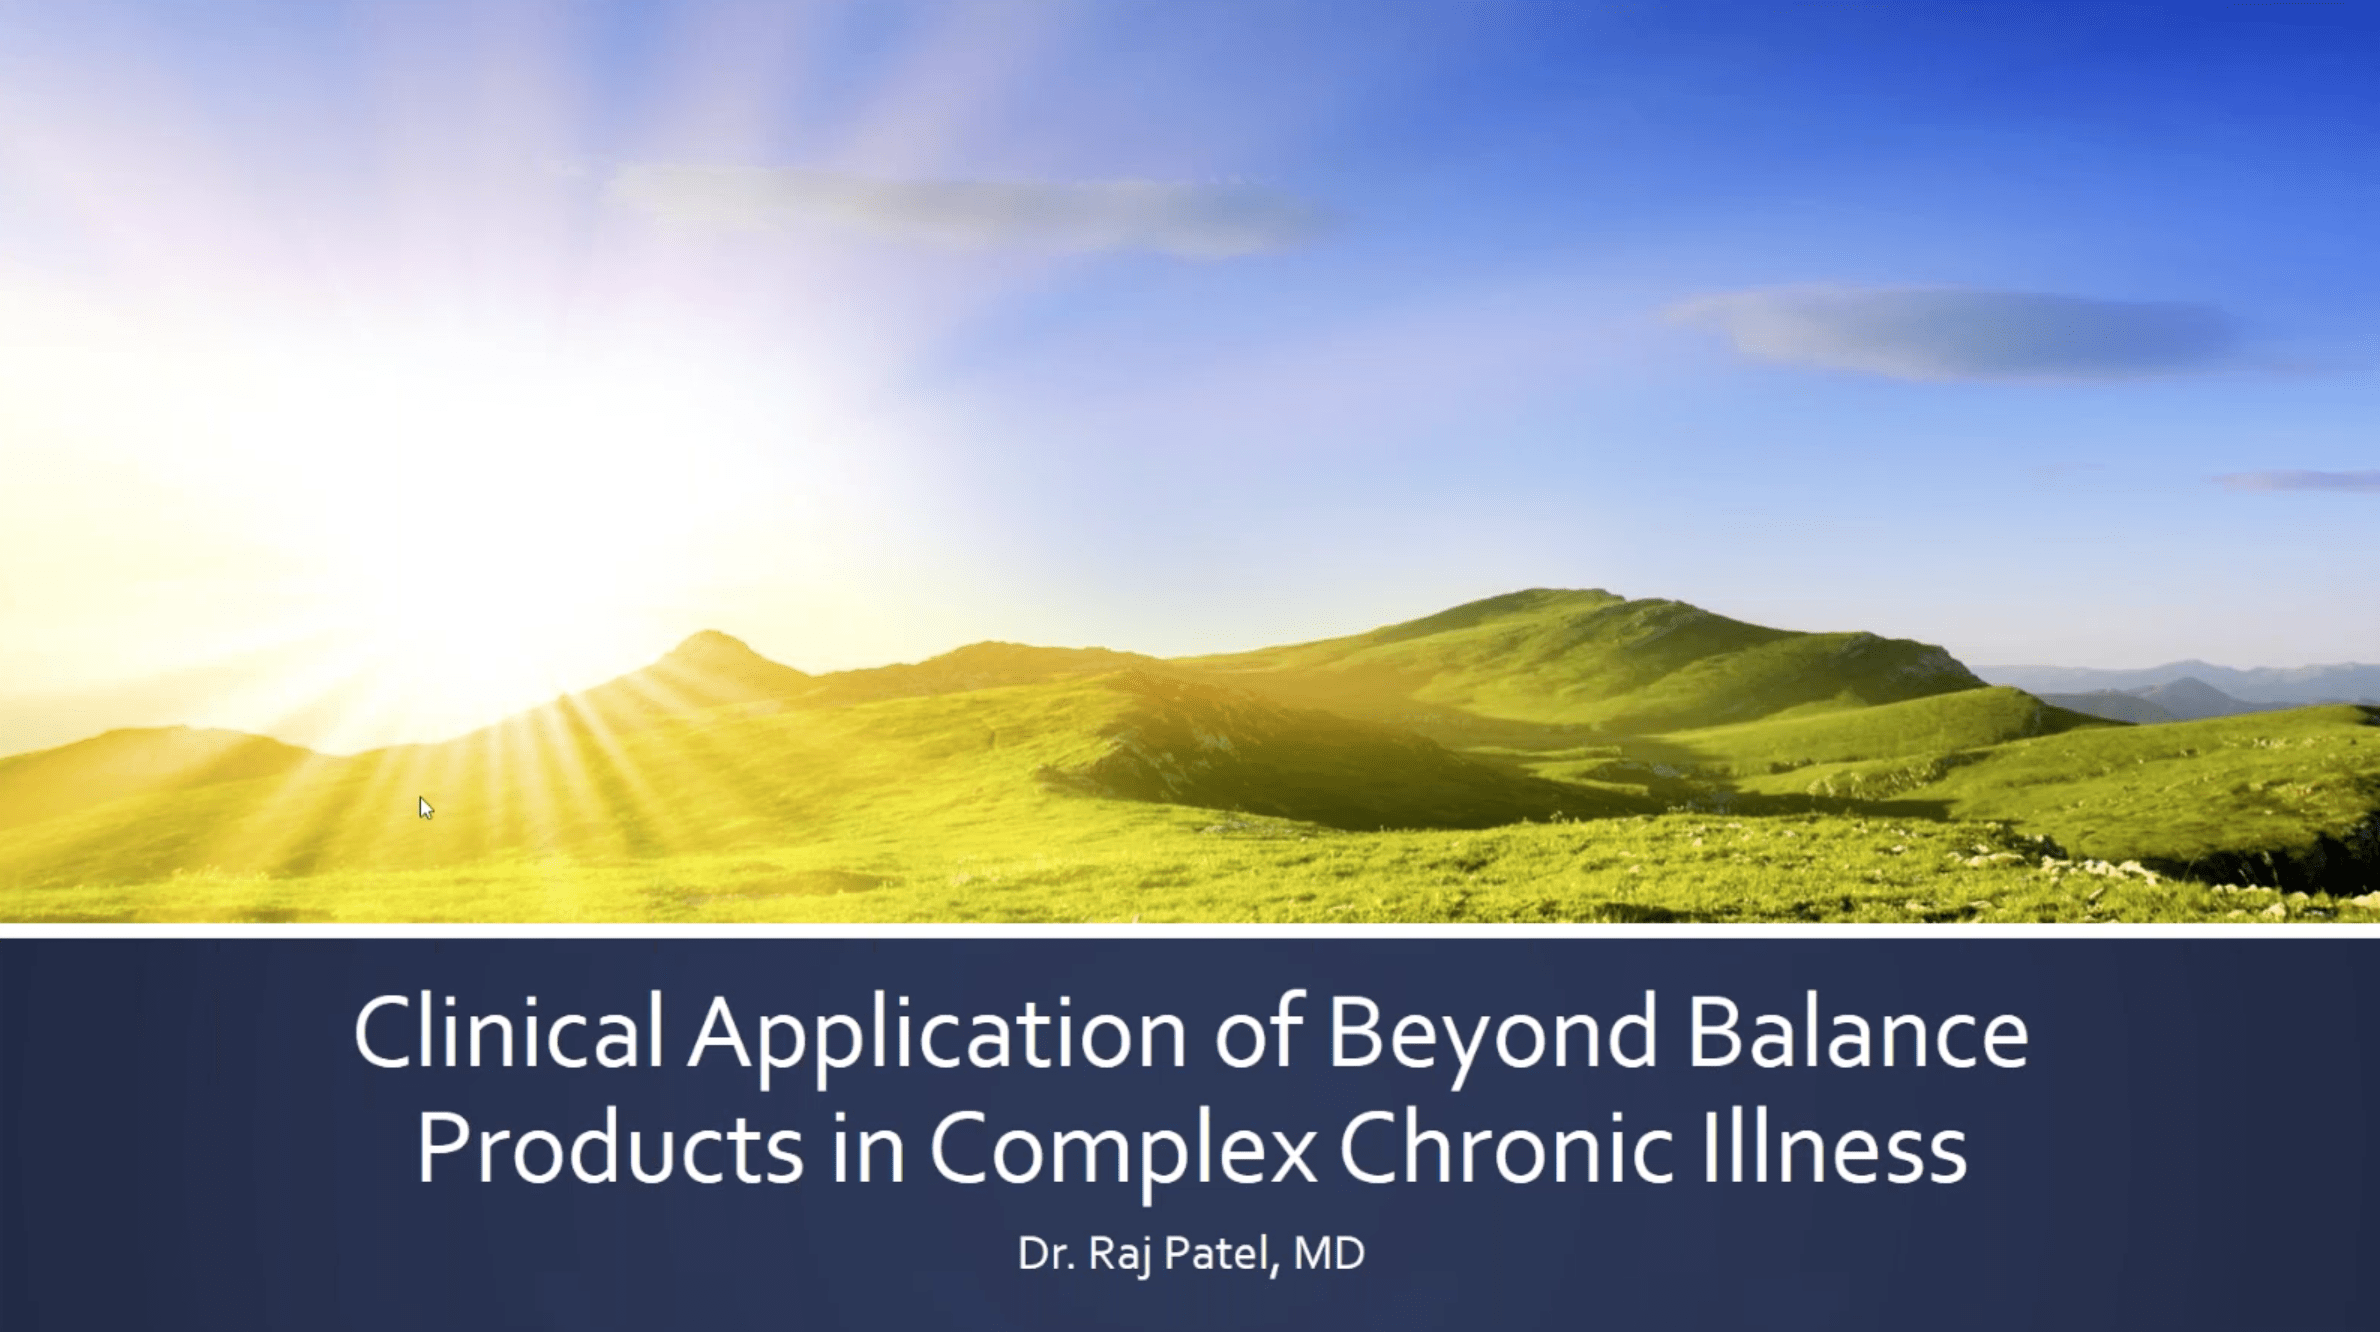 Clinical Application of Beyond Balance Products in Complex Chronic Illness by Raj Patel